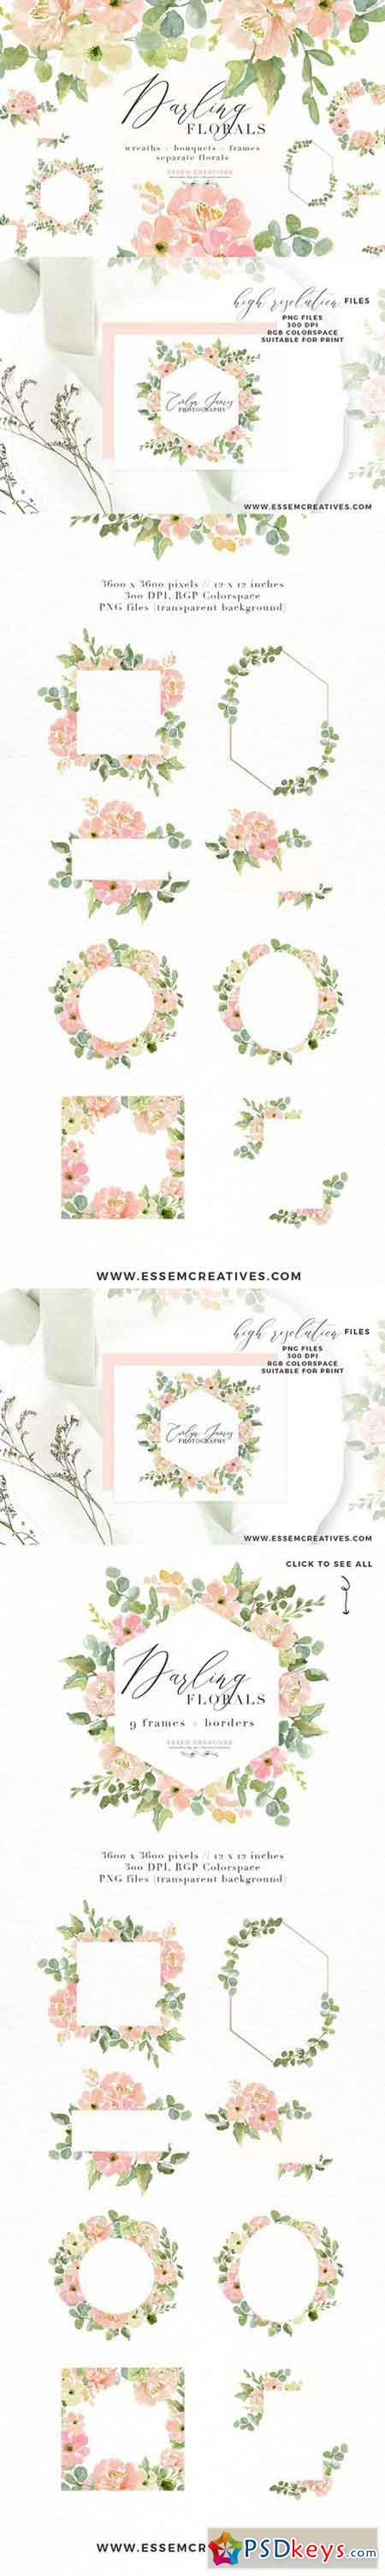 Wedding Invite Watercolor Flower PNG 2402689